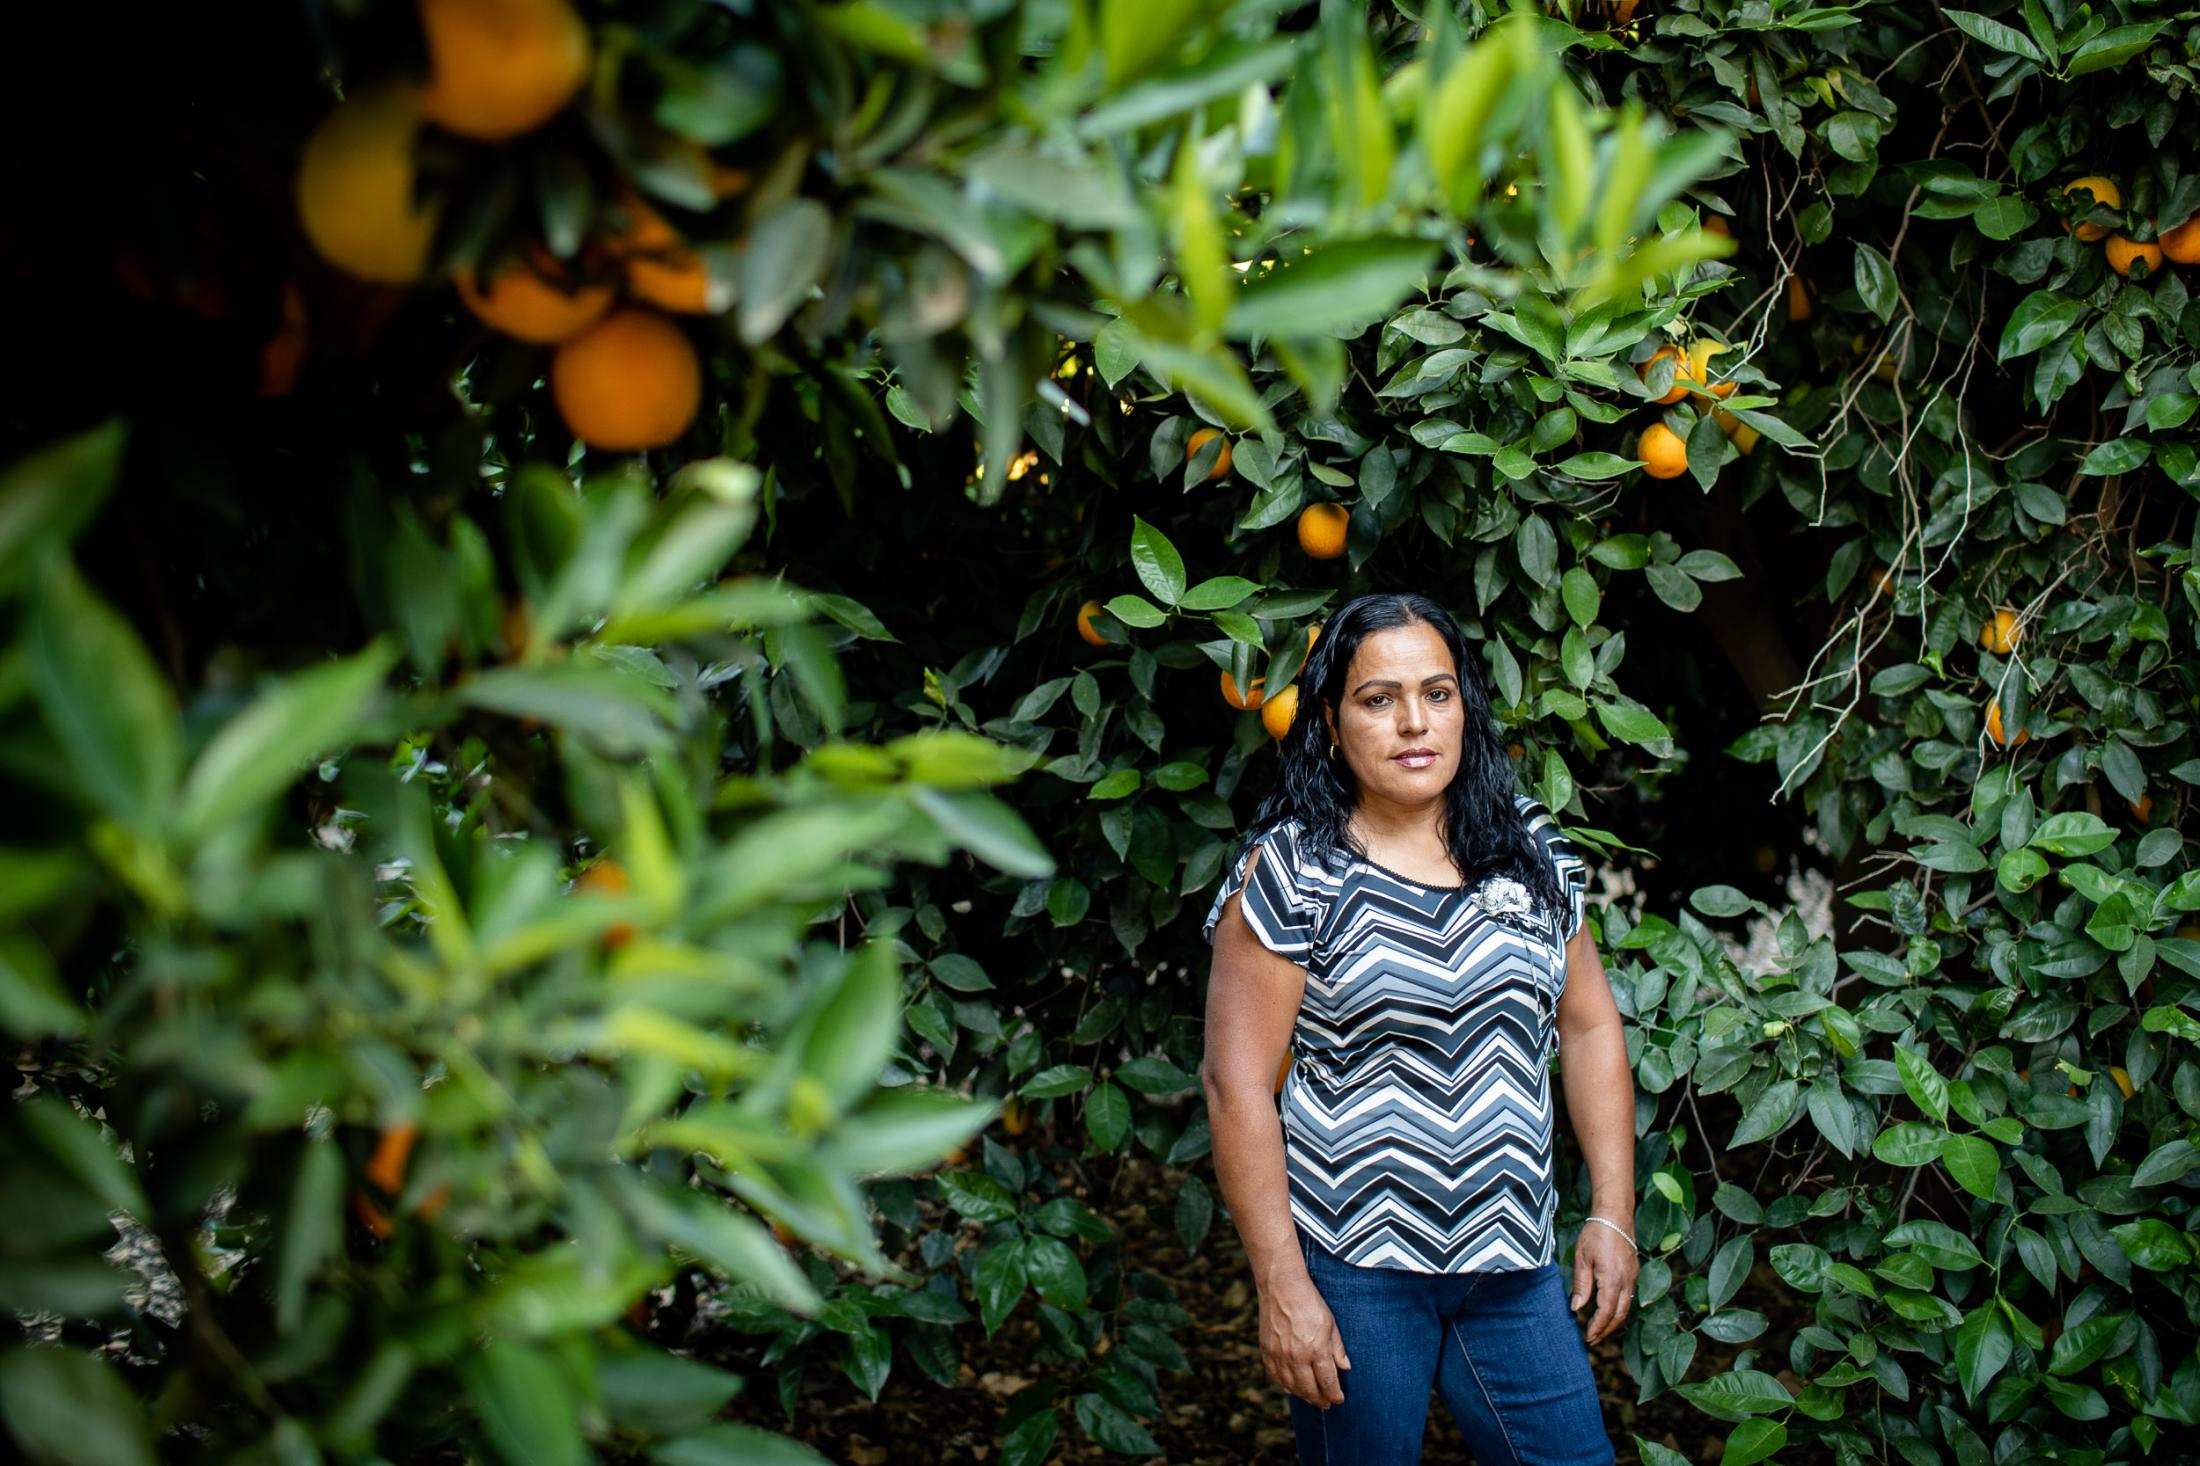 """Fidelia Morales is a mother of five who lives in Lindsay, California, near citrus groves where chlorpyrifos use is common. Morales, who lives next to citrus groves where chlorpyrifos use is common, said pesticide exposure has hurt her family, especially her 11-year-old son: """"My son is not able to stay still and listen in school. I've had to sit with him in the classroom to help with his assignments."""""""